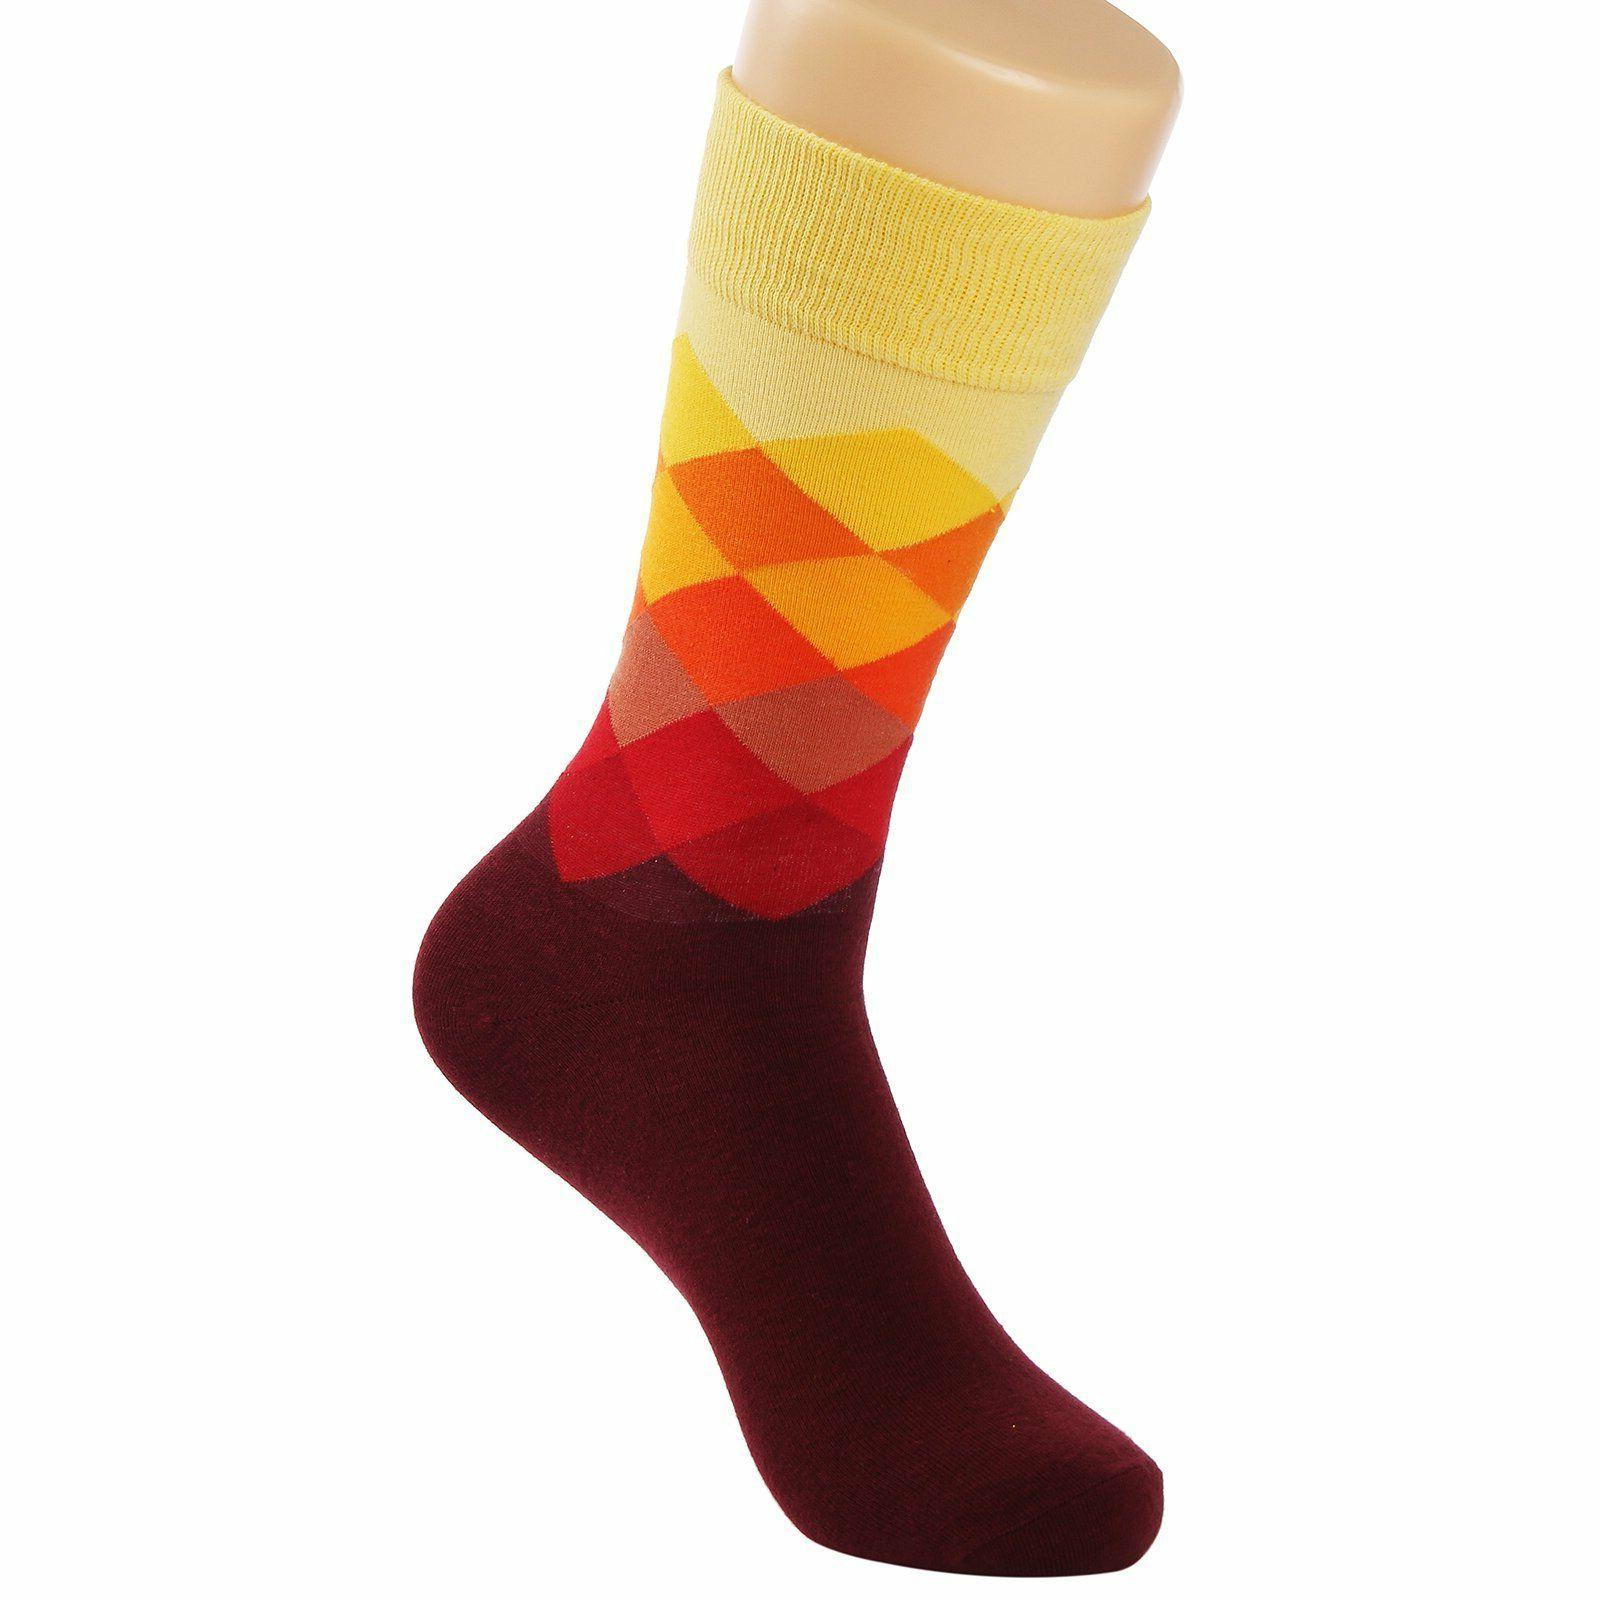 Mens Dress Socks 6-Pair Funny Colorful Rainbow Shoe Size 6-12